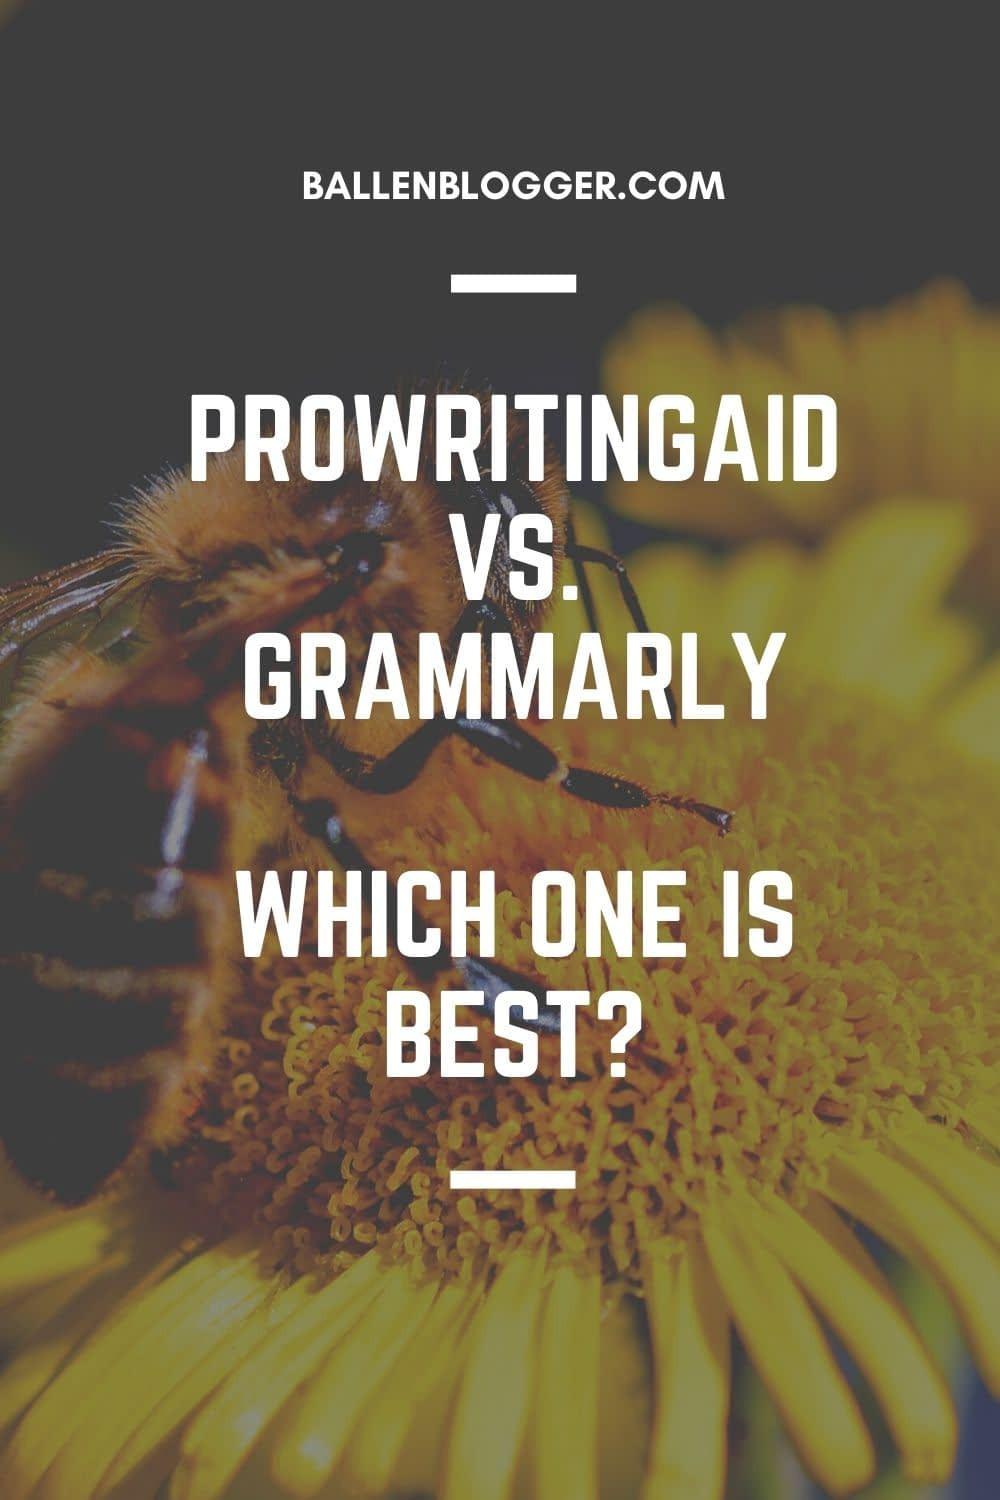 Many writers love using Grammarly or ProWritingAid to enhance their writing and check for spelling mistakes. Various people use these software platforms, including professional writers, journalists, students, freelancers, and people working in the corporate world.